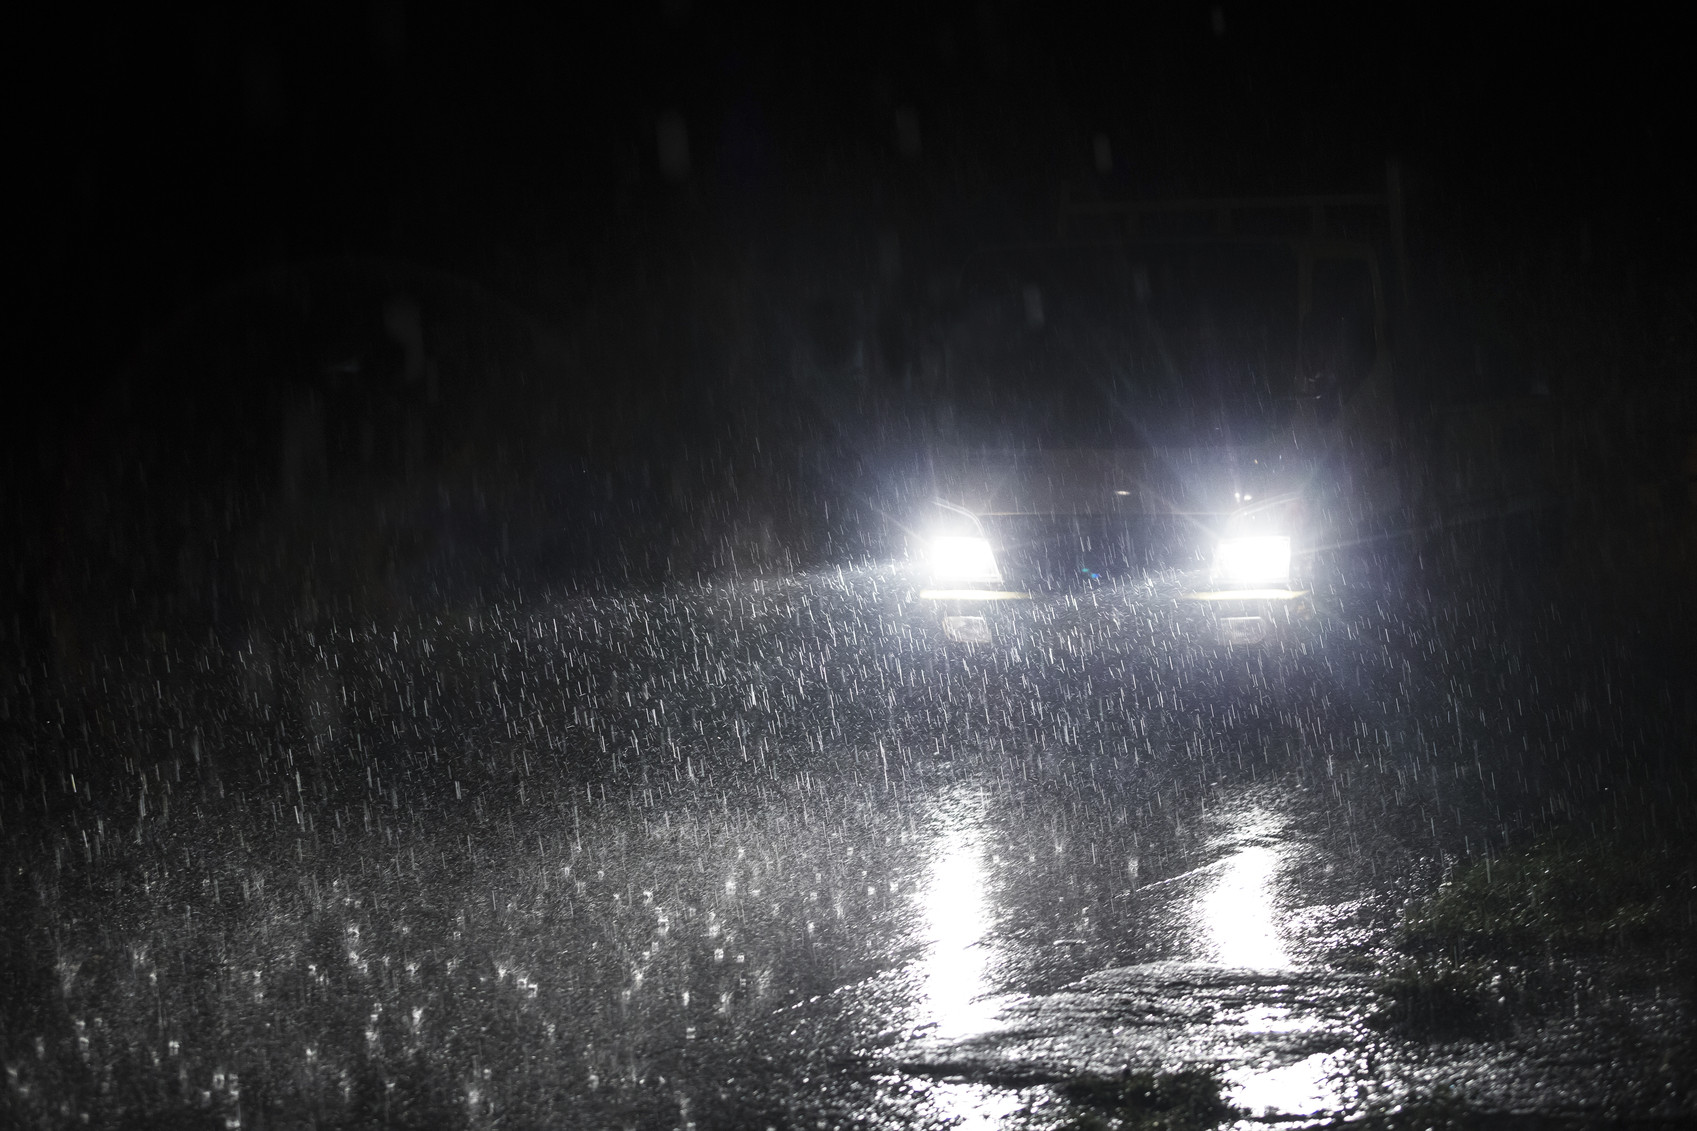 Yellow headlight and road in the dark while heavy raining.